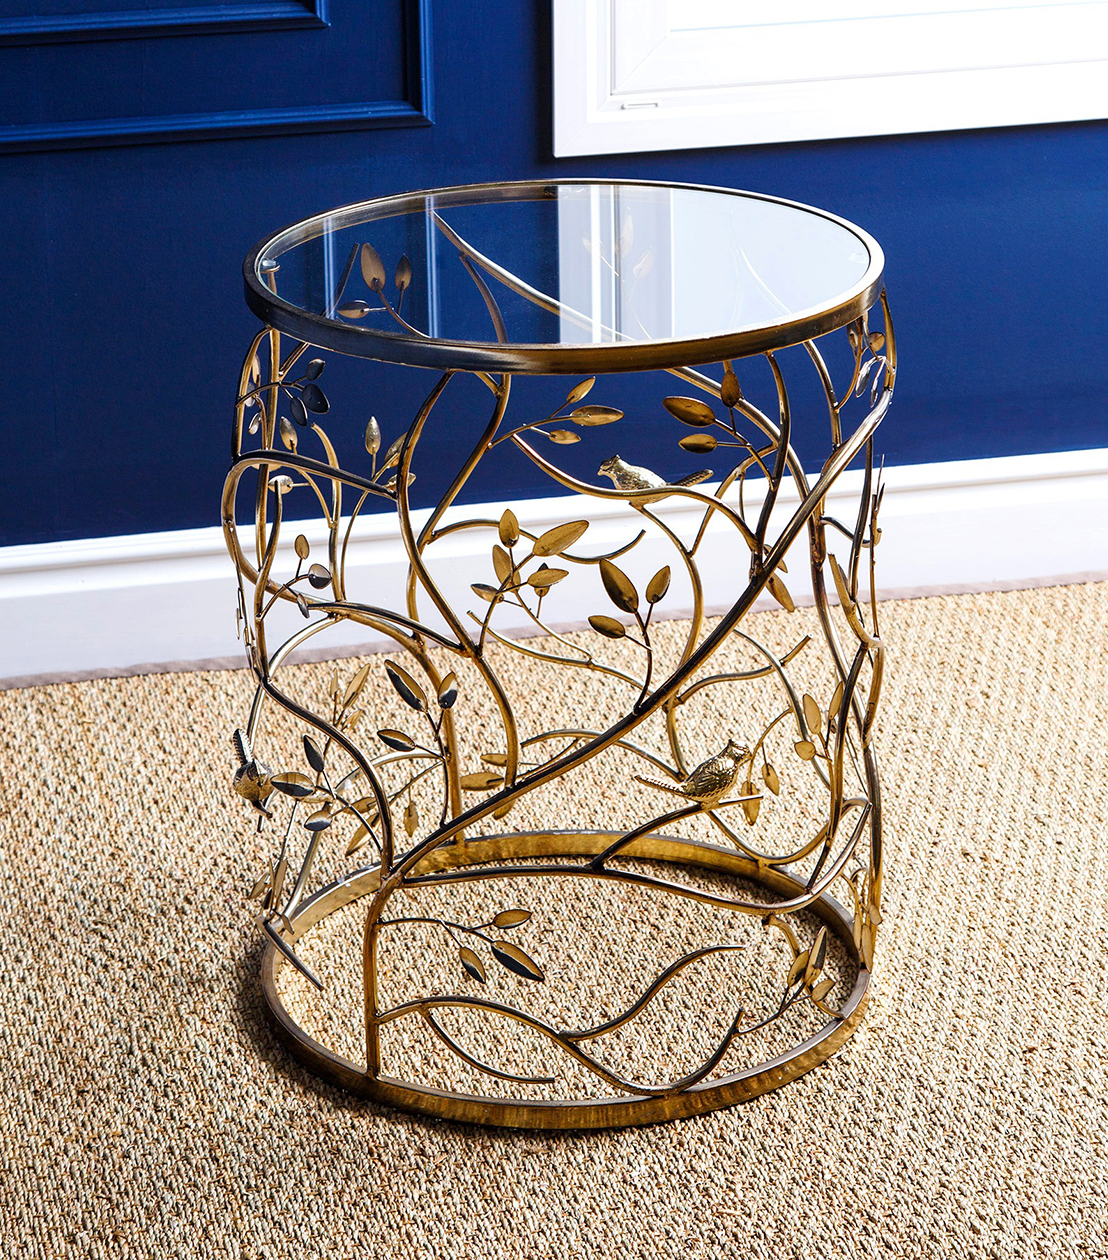 accent tables venetian round glass end table knobs and handles old antique bedroom side decor mirror coffee ikea white outdoor umbrella lights atlantic furniture wicker younger